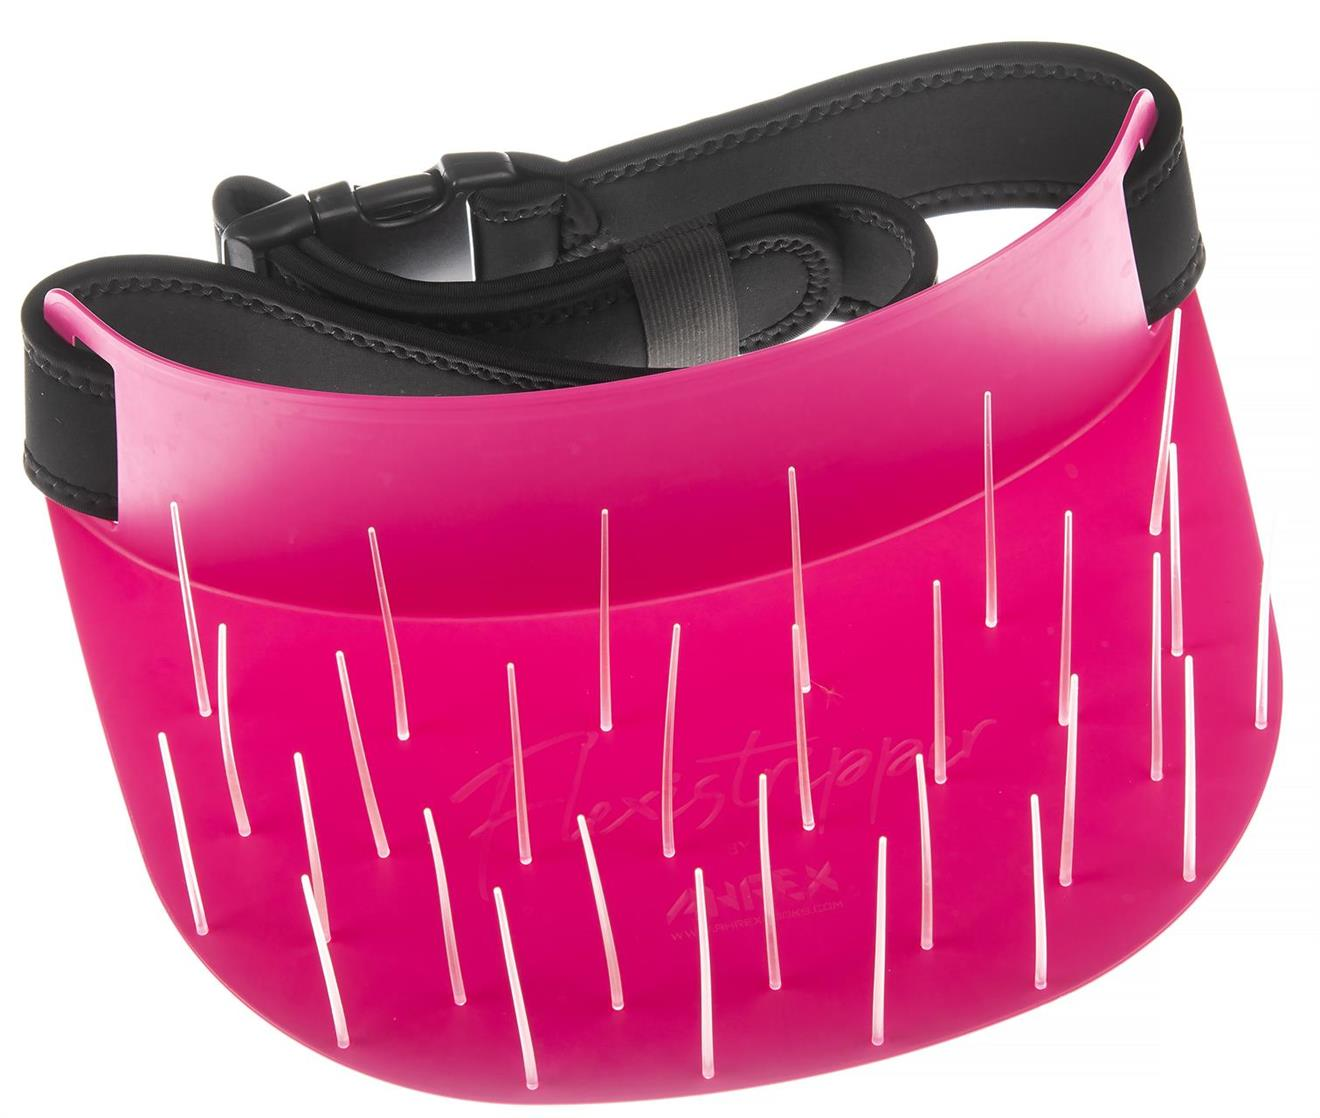 Ahrex Flexistripper - PINK with Clear Pegs w/125 cm/50 inche